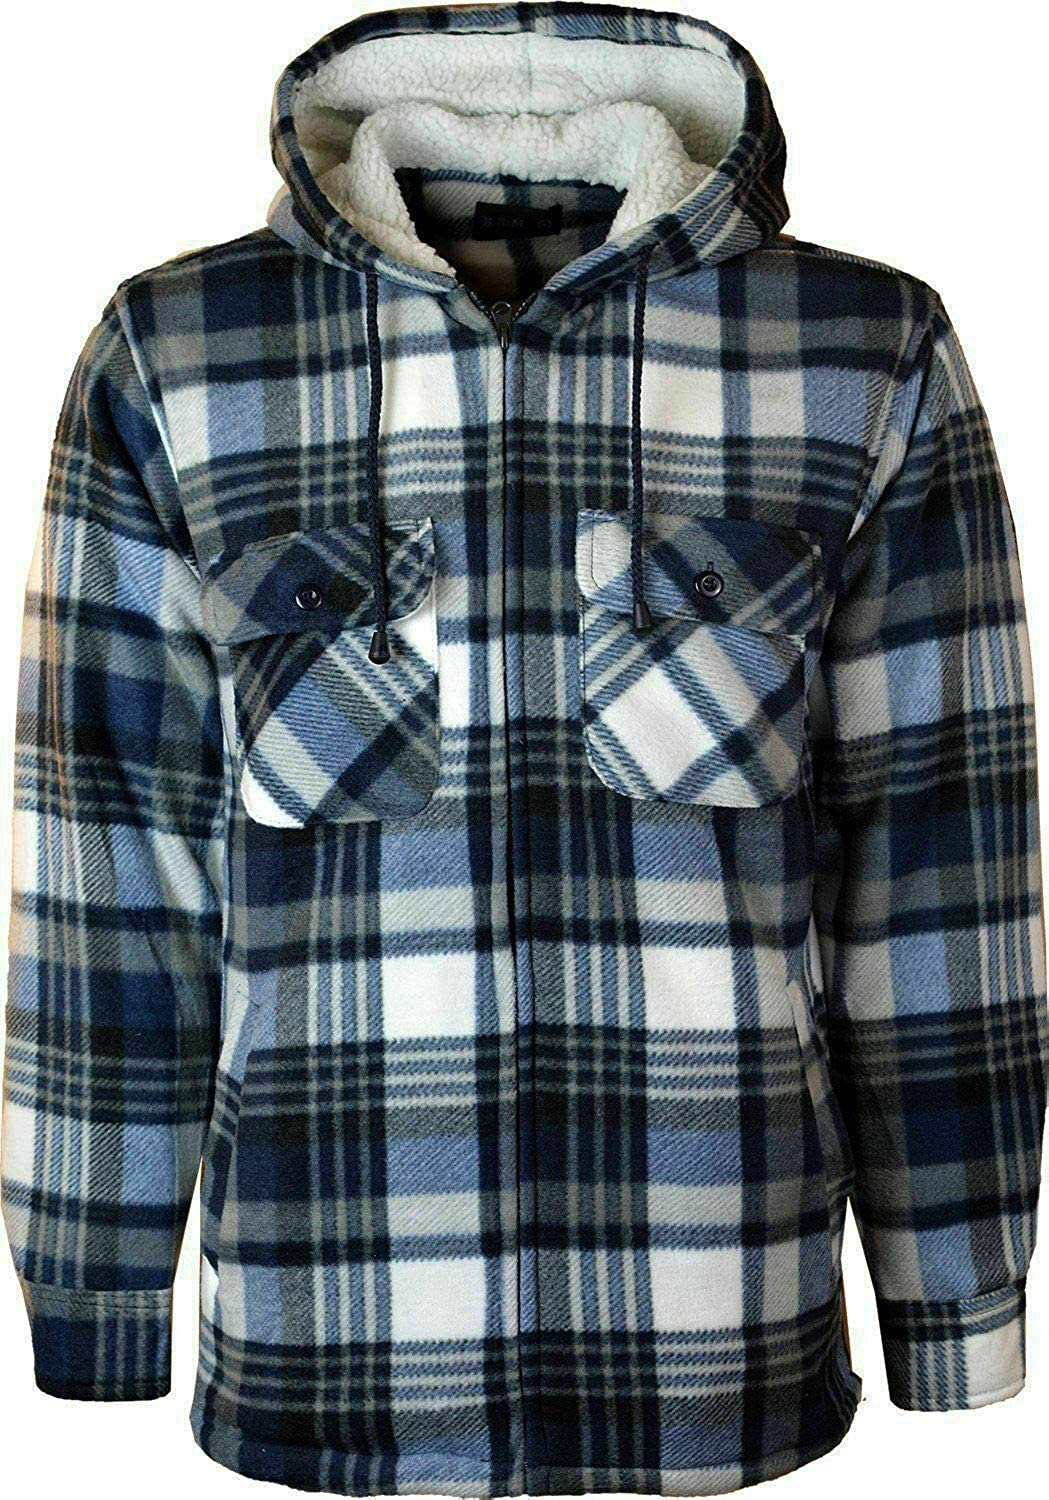 Mens Padded Lumberjack Sherpa Fur Lined Hooded Quilted Shirt Men Jacket Warm Thick Thermal Check Shirt Zip Up Hoodie UK S-5XL